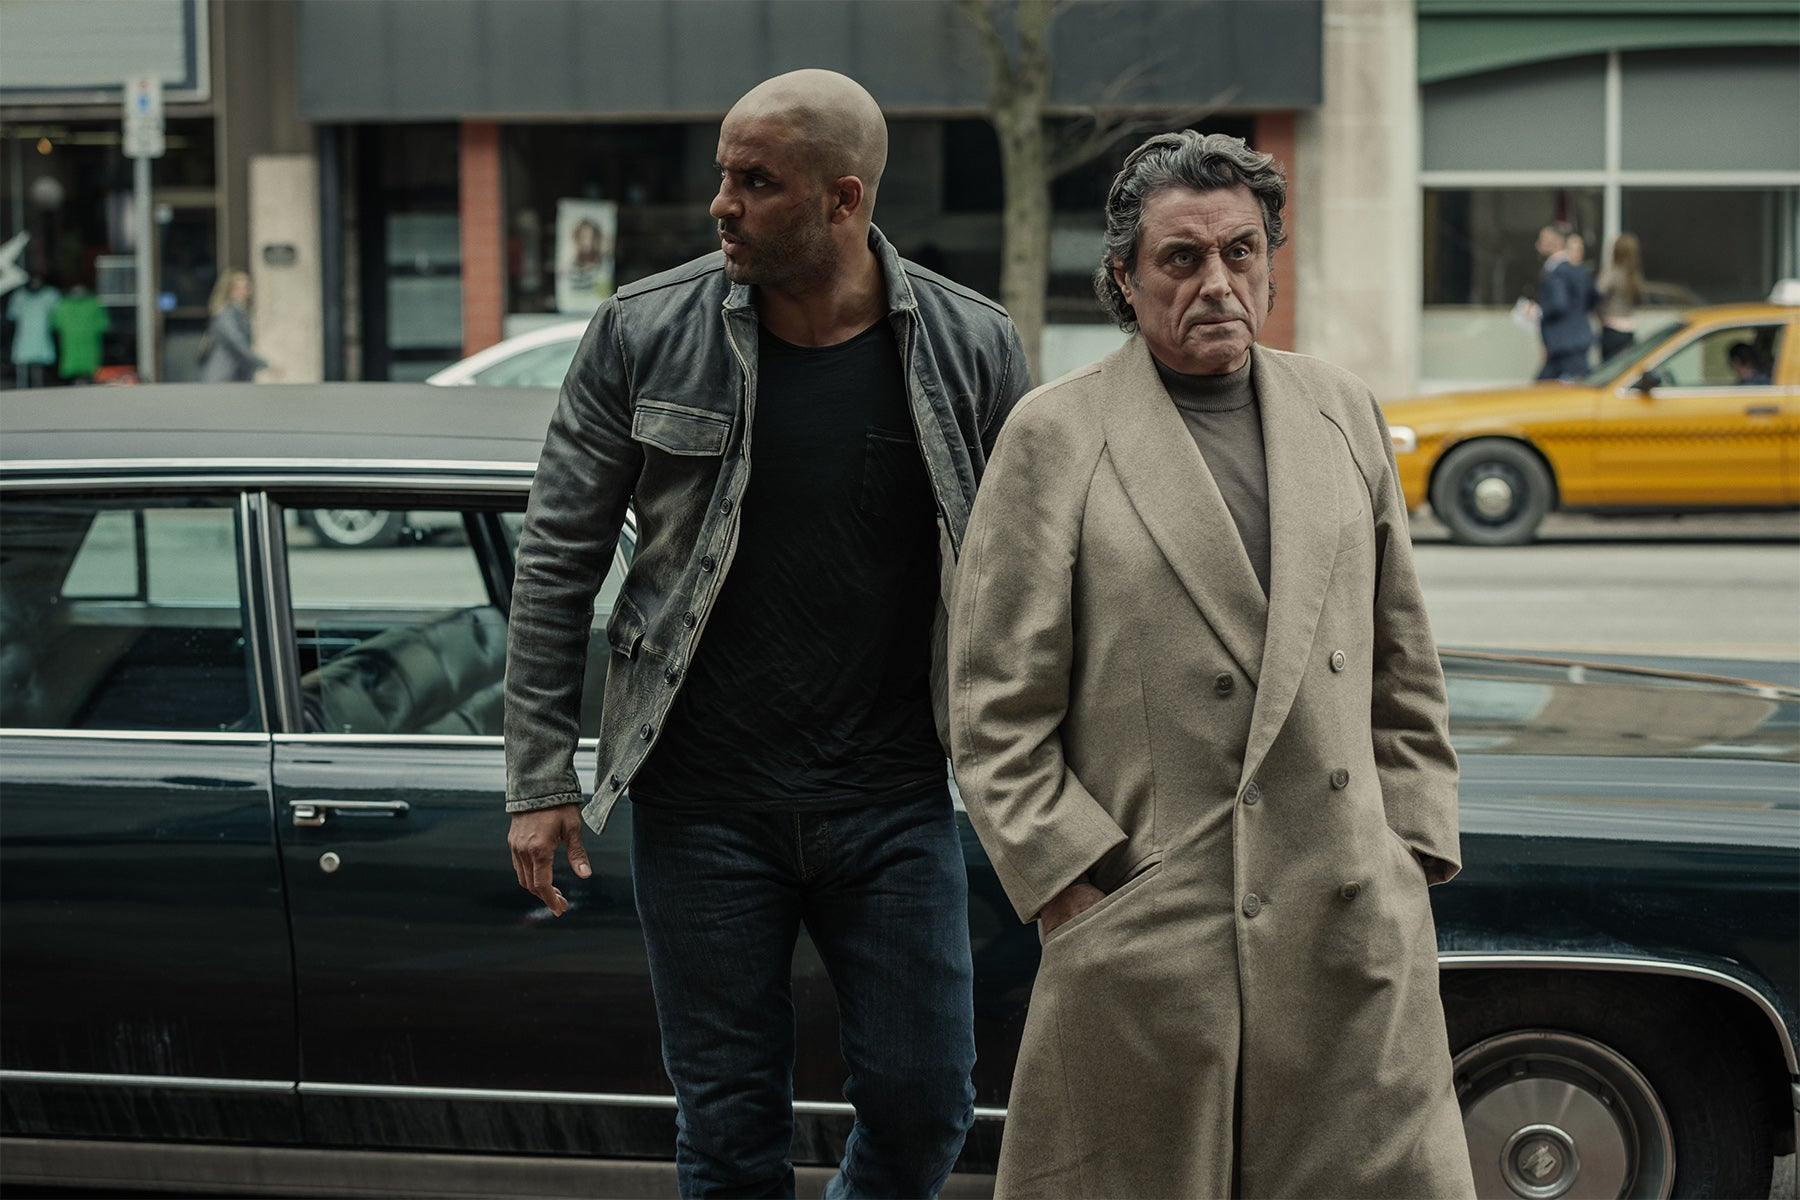 OnAmerican Gods,Belief Is Starting To Make The Impossible Happen